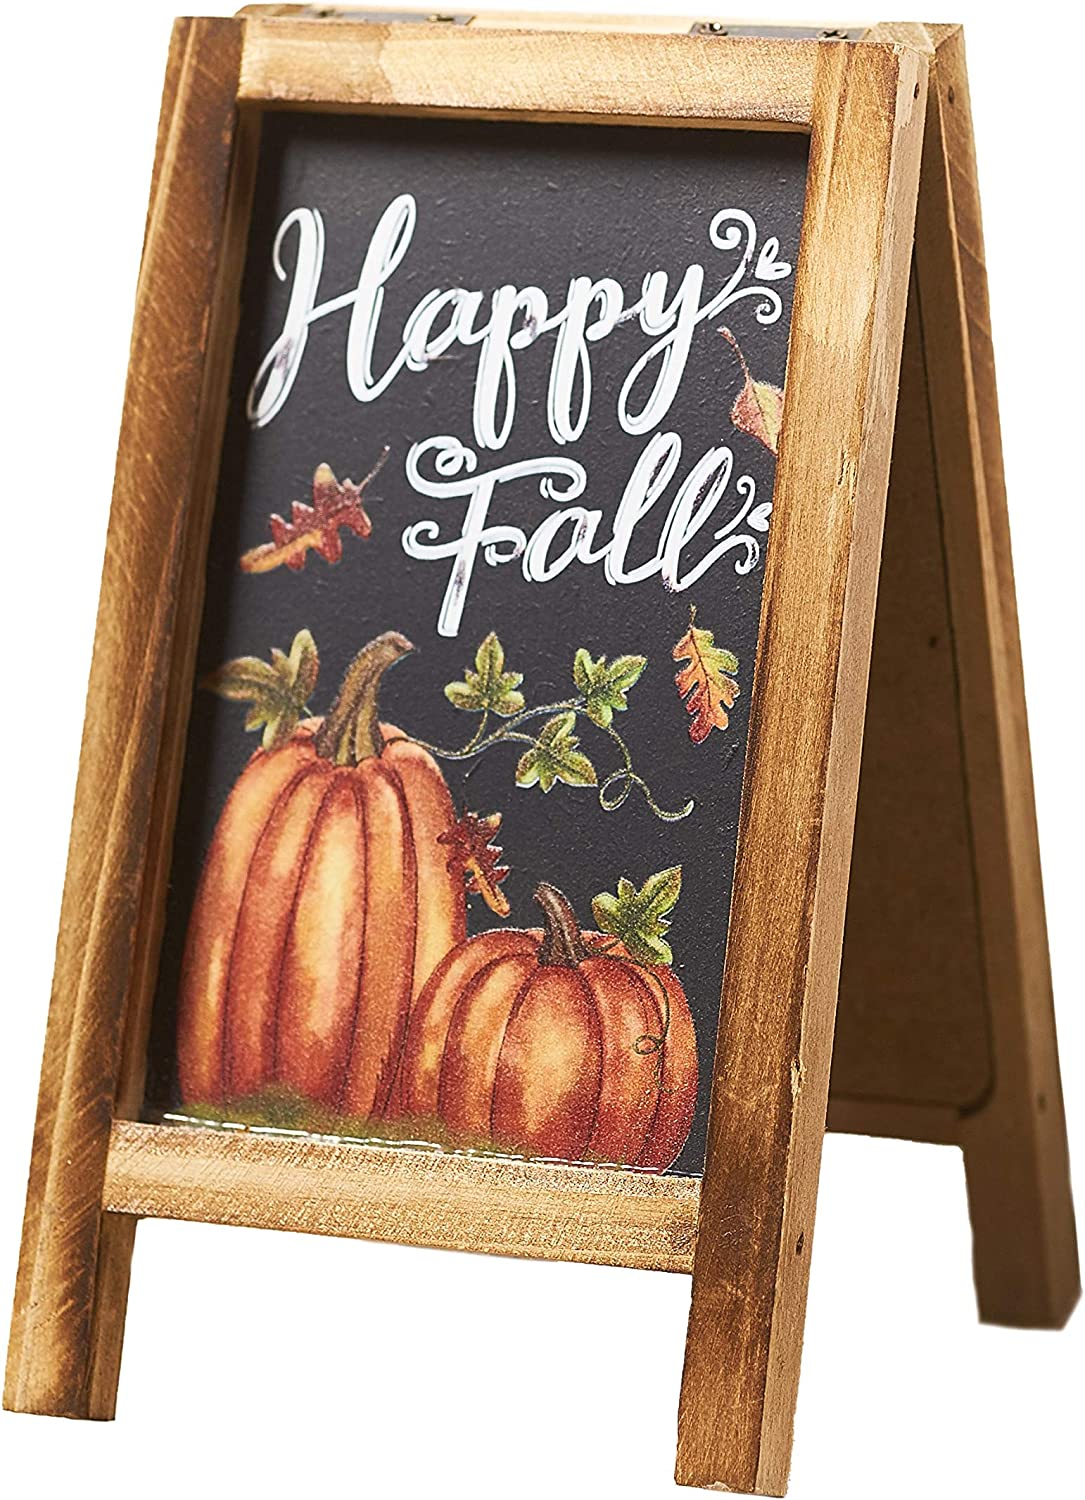 The Lakeside Collection Decorative Fall/Winter Mini Easel with Double-Sided Christmas, Autumn Messages